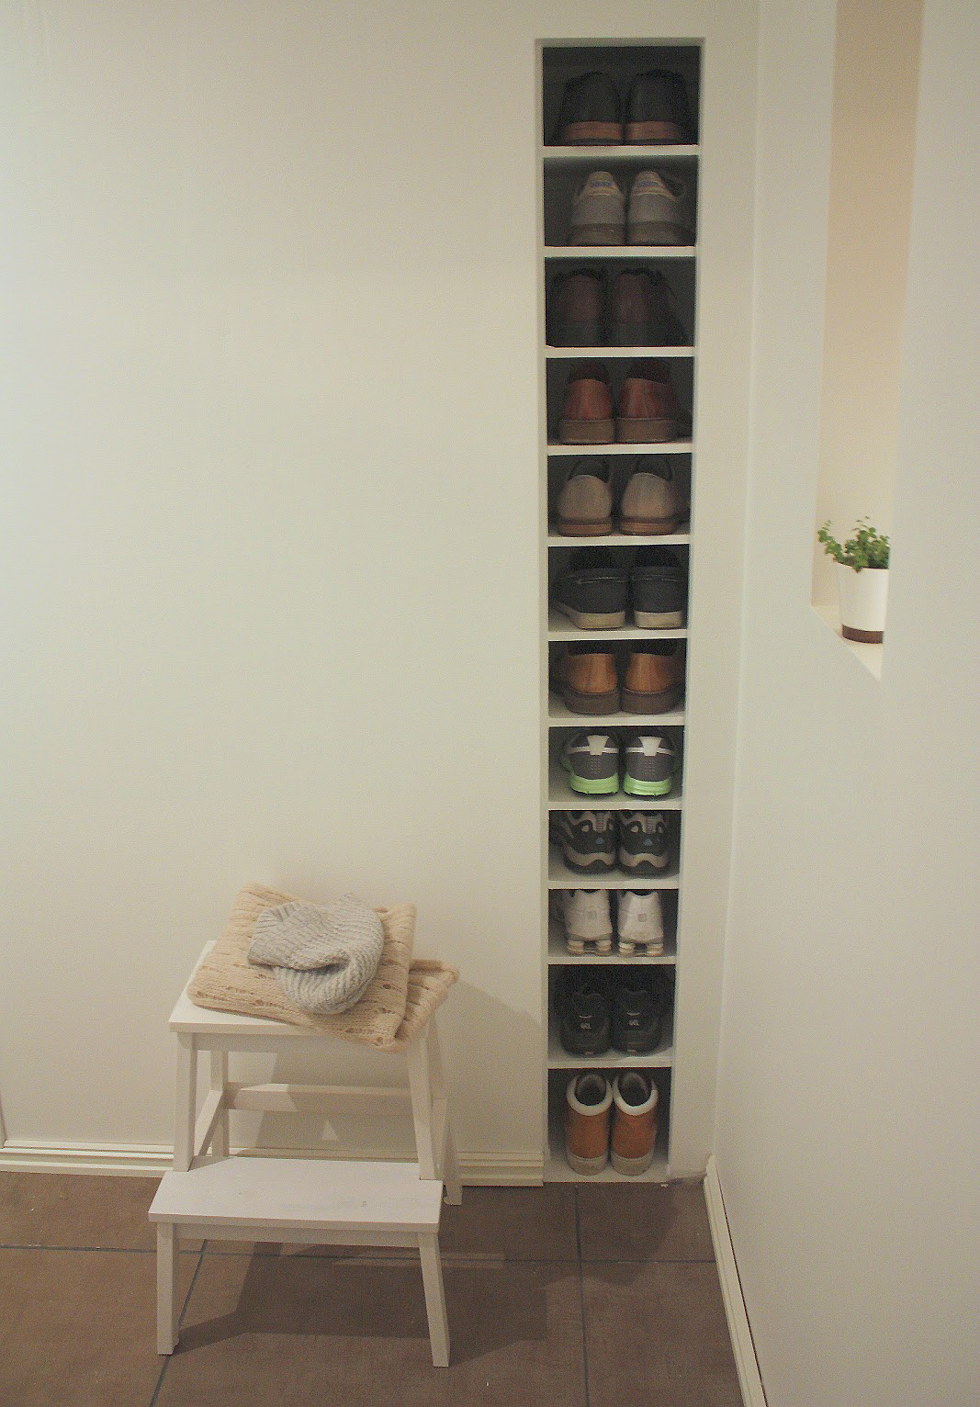 Built-in shelf storage in a wall